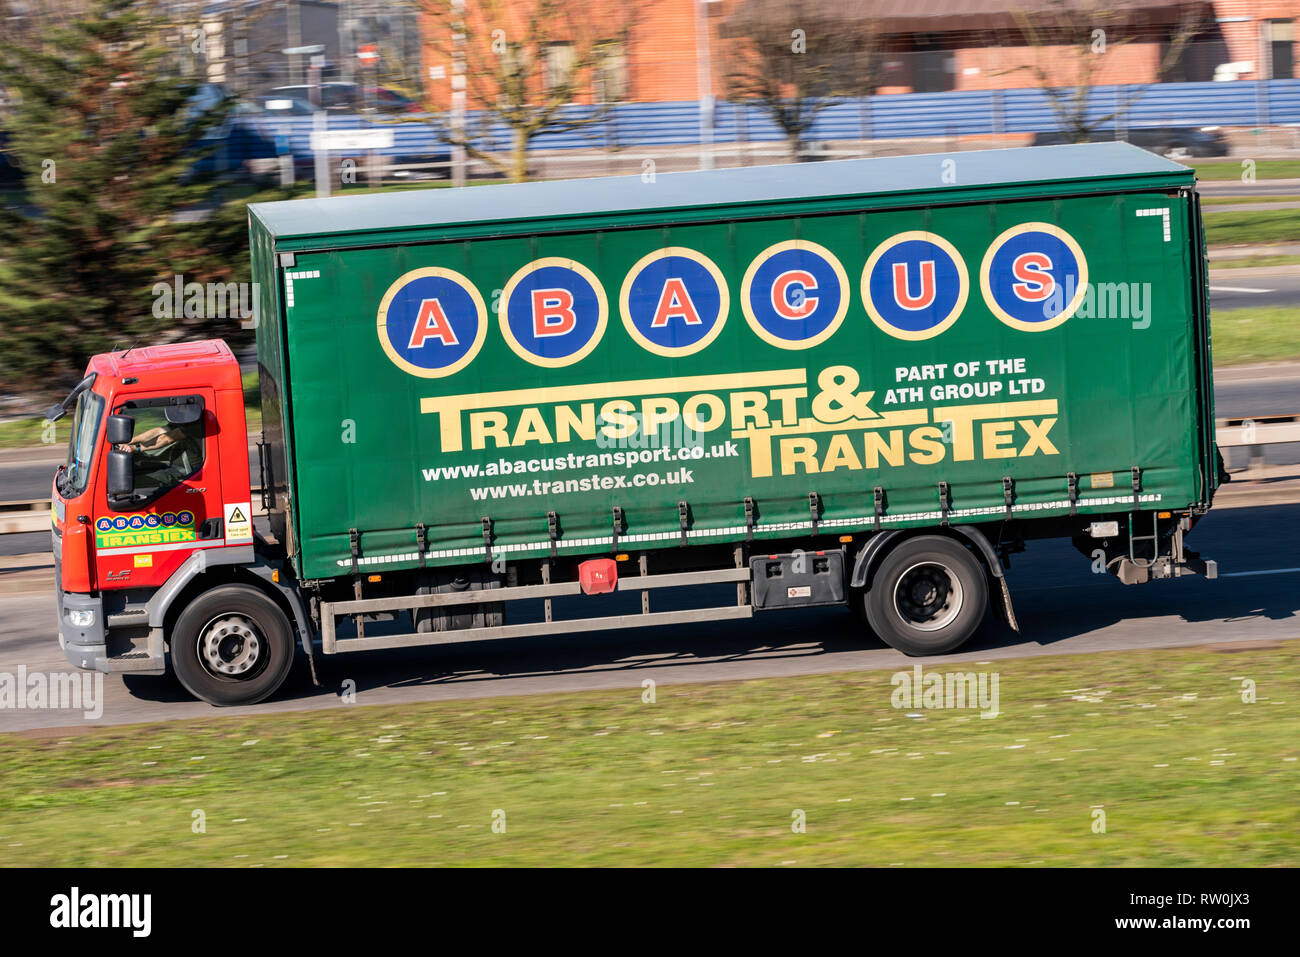 Abacus Transport & Transtex road transport, freight